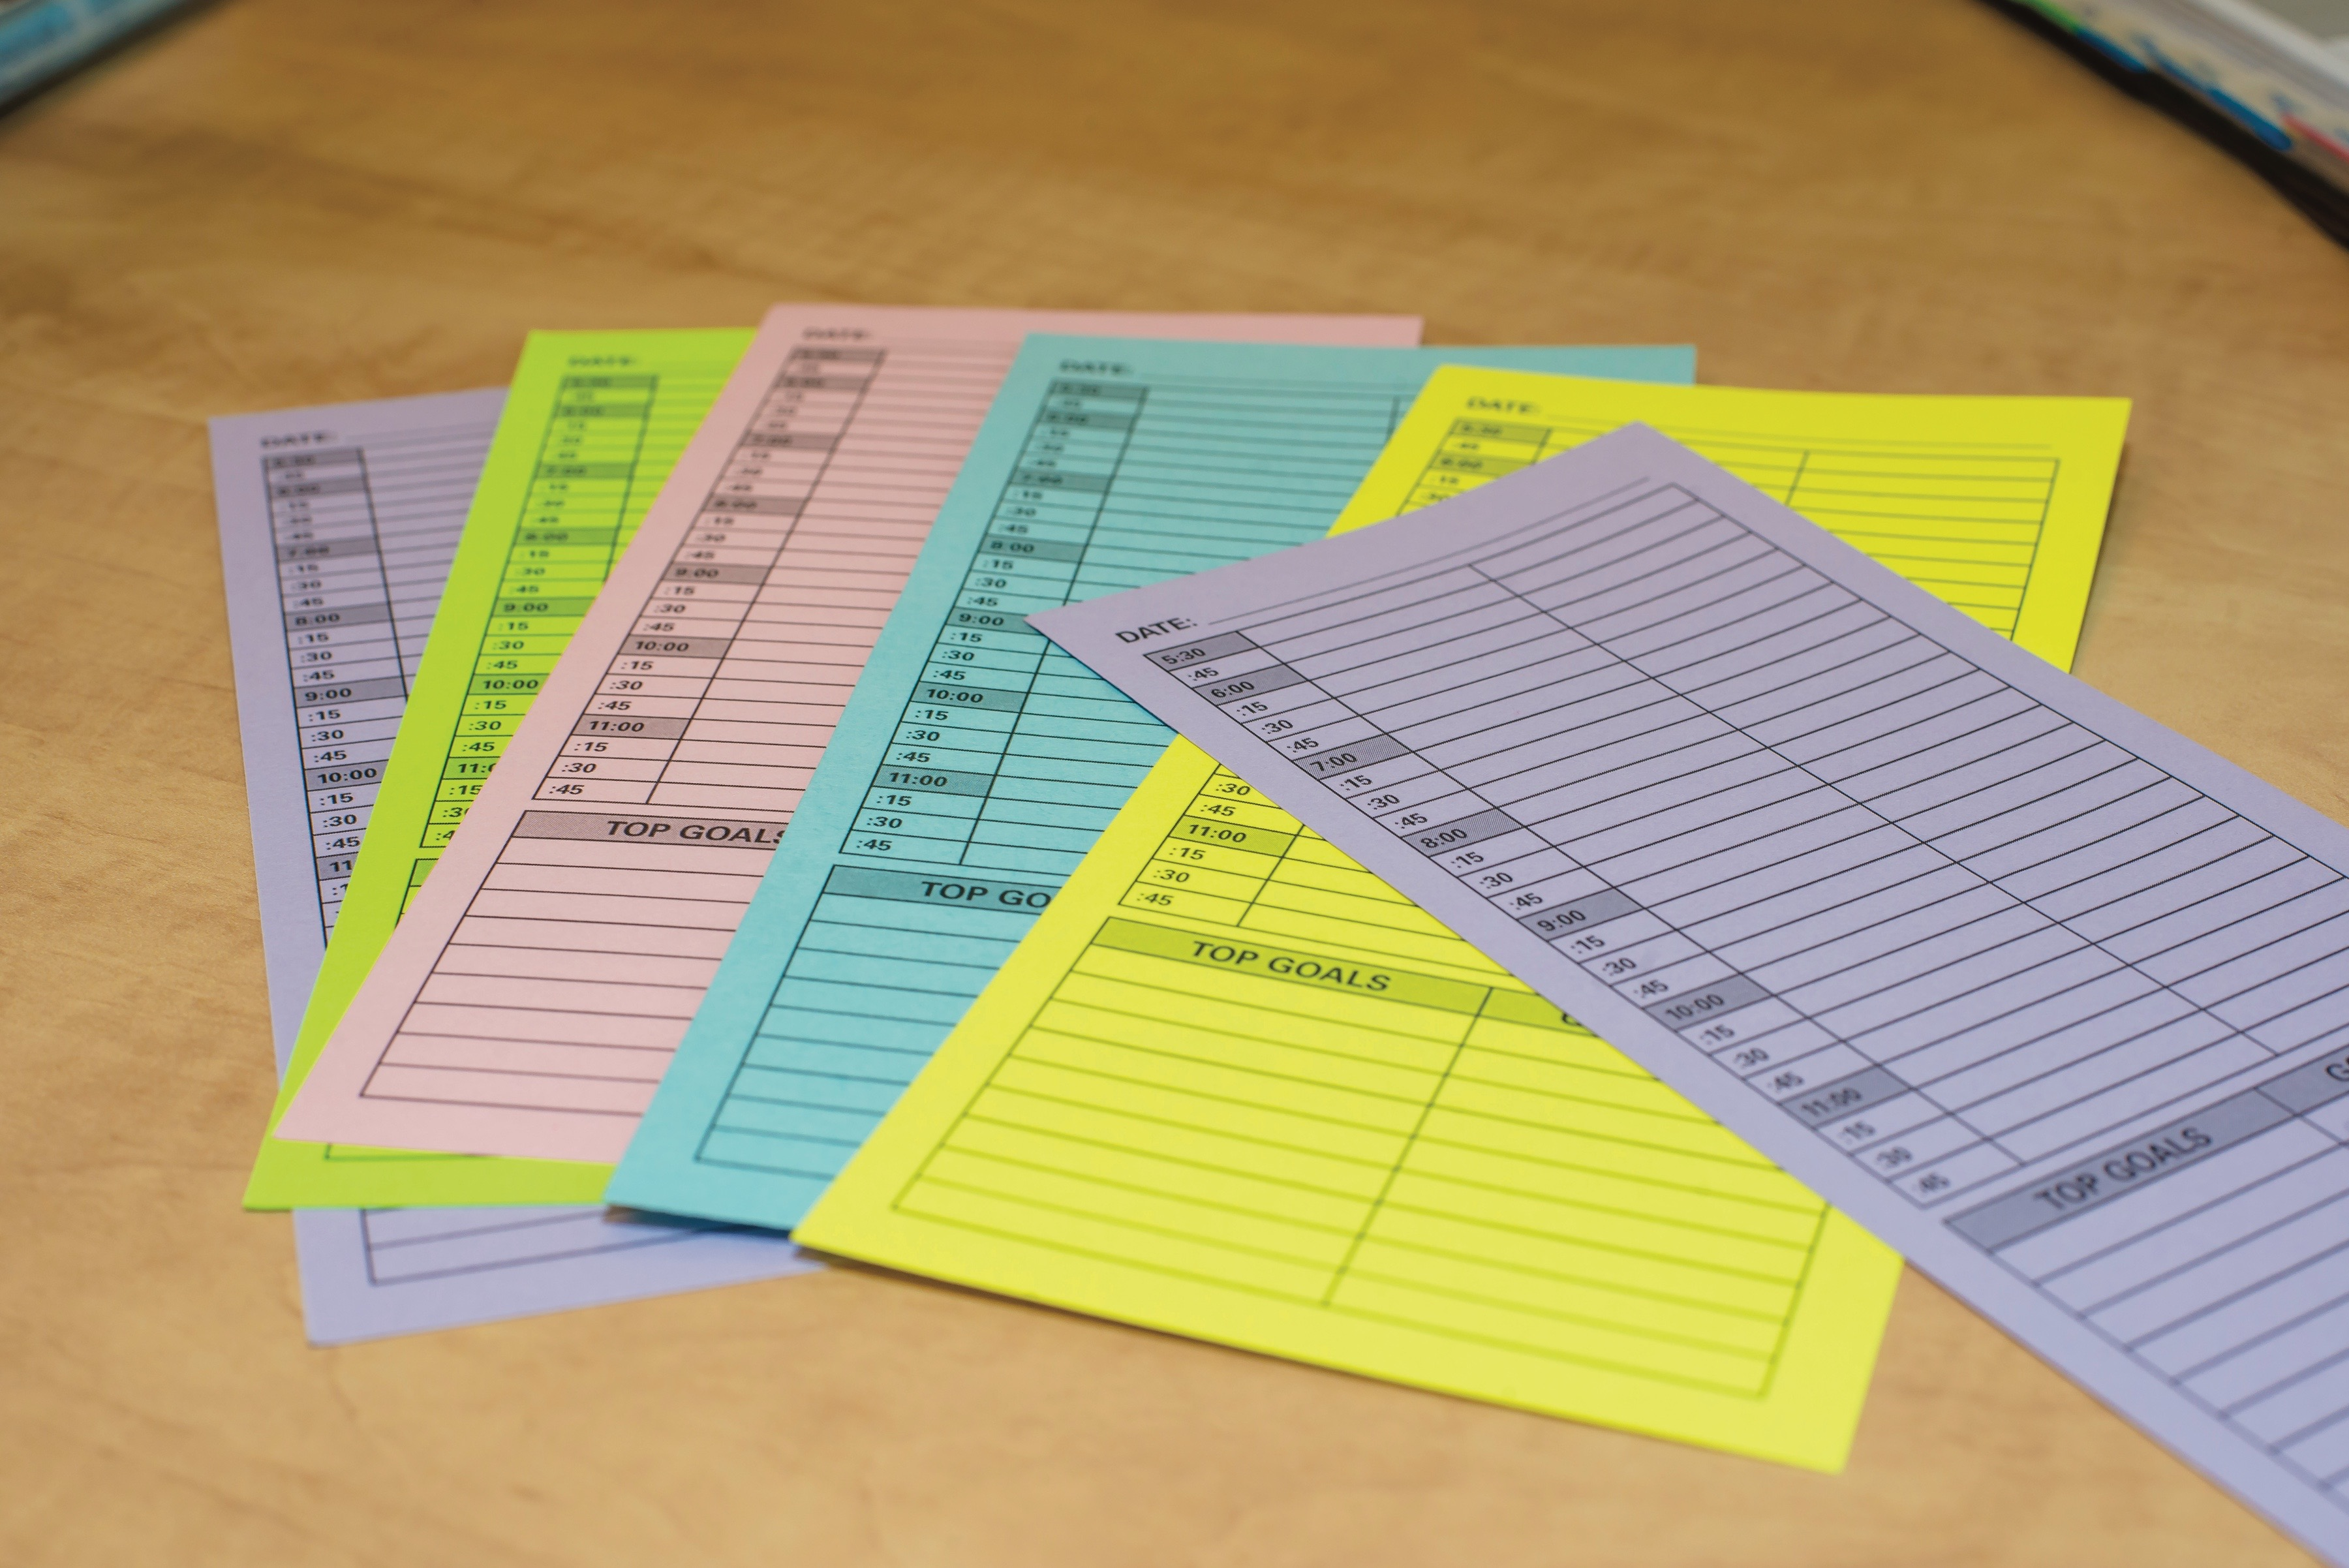 Cathy Lewis 15-Minute Planners, organization